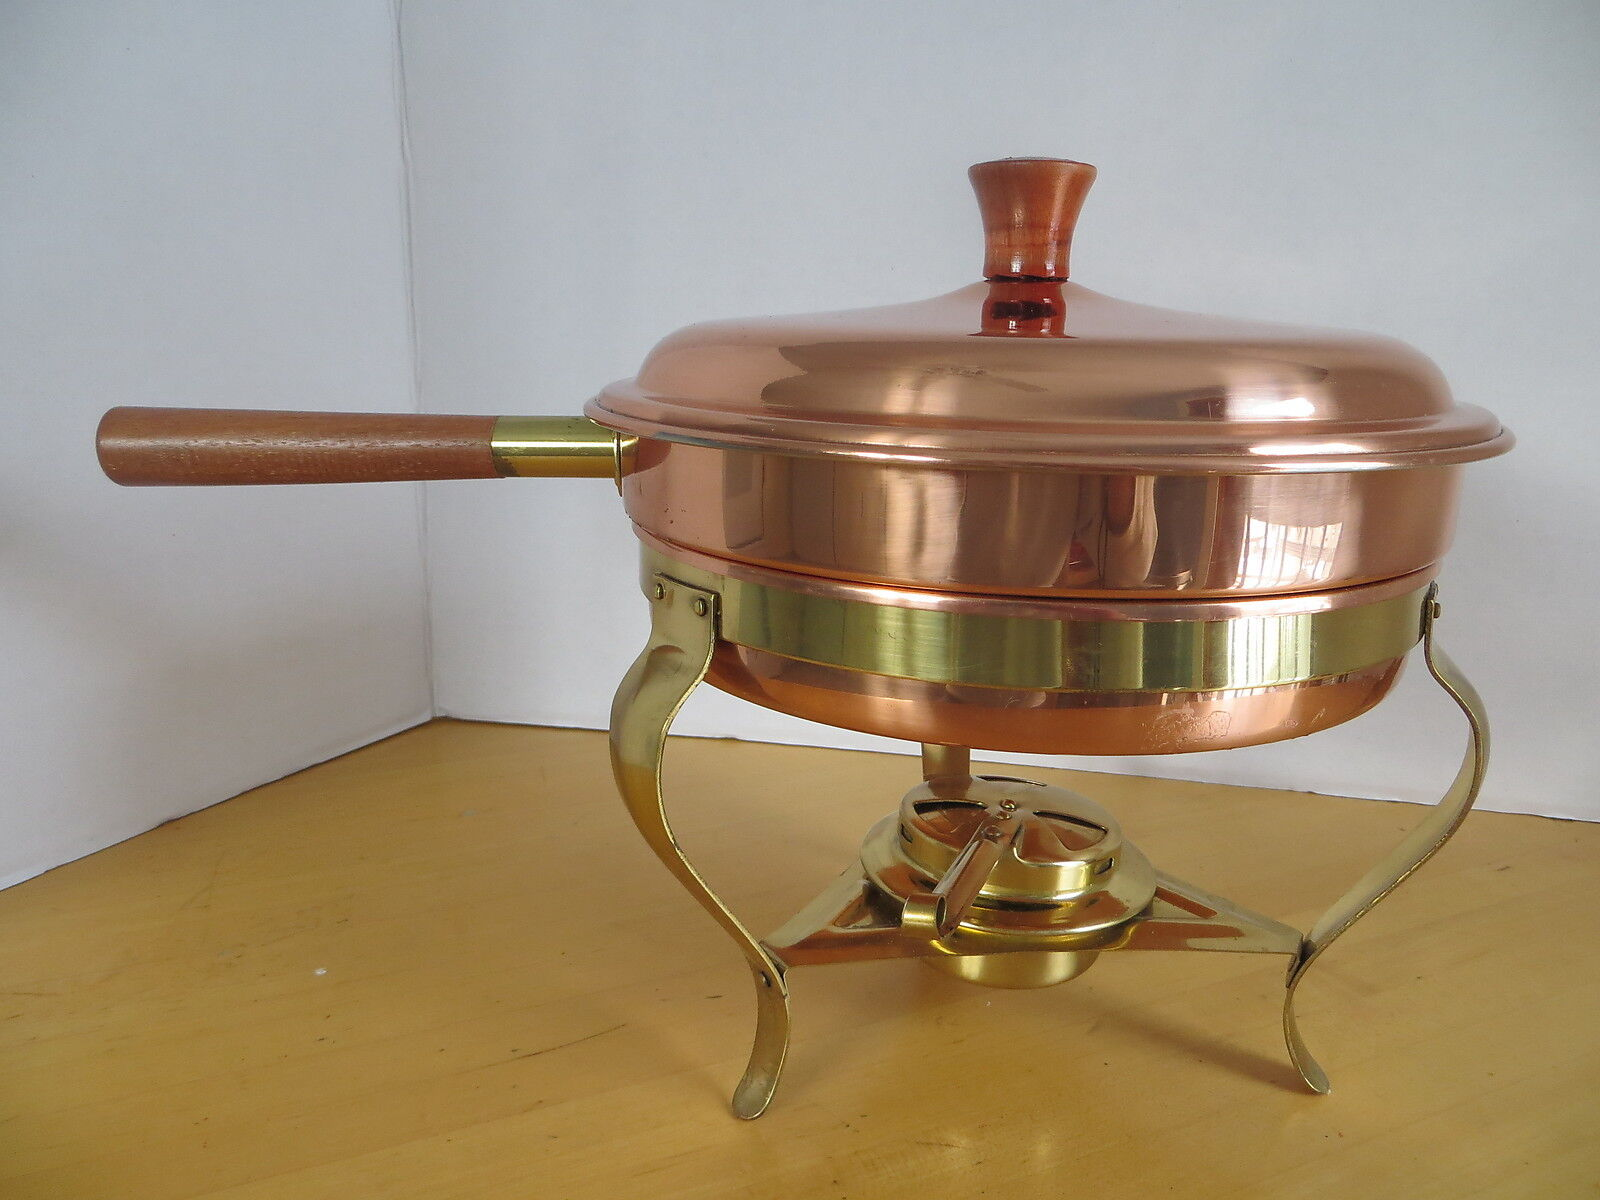 Tagus 9  Copper Clad SS Pan Brass Stand and Burner & Double Boiler Pan Portugal